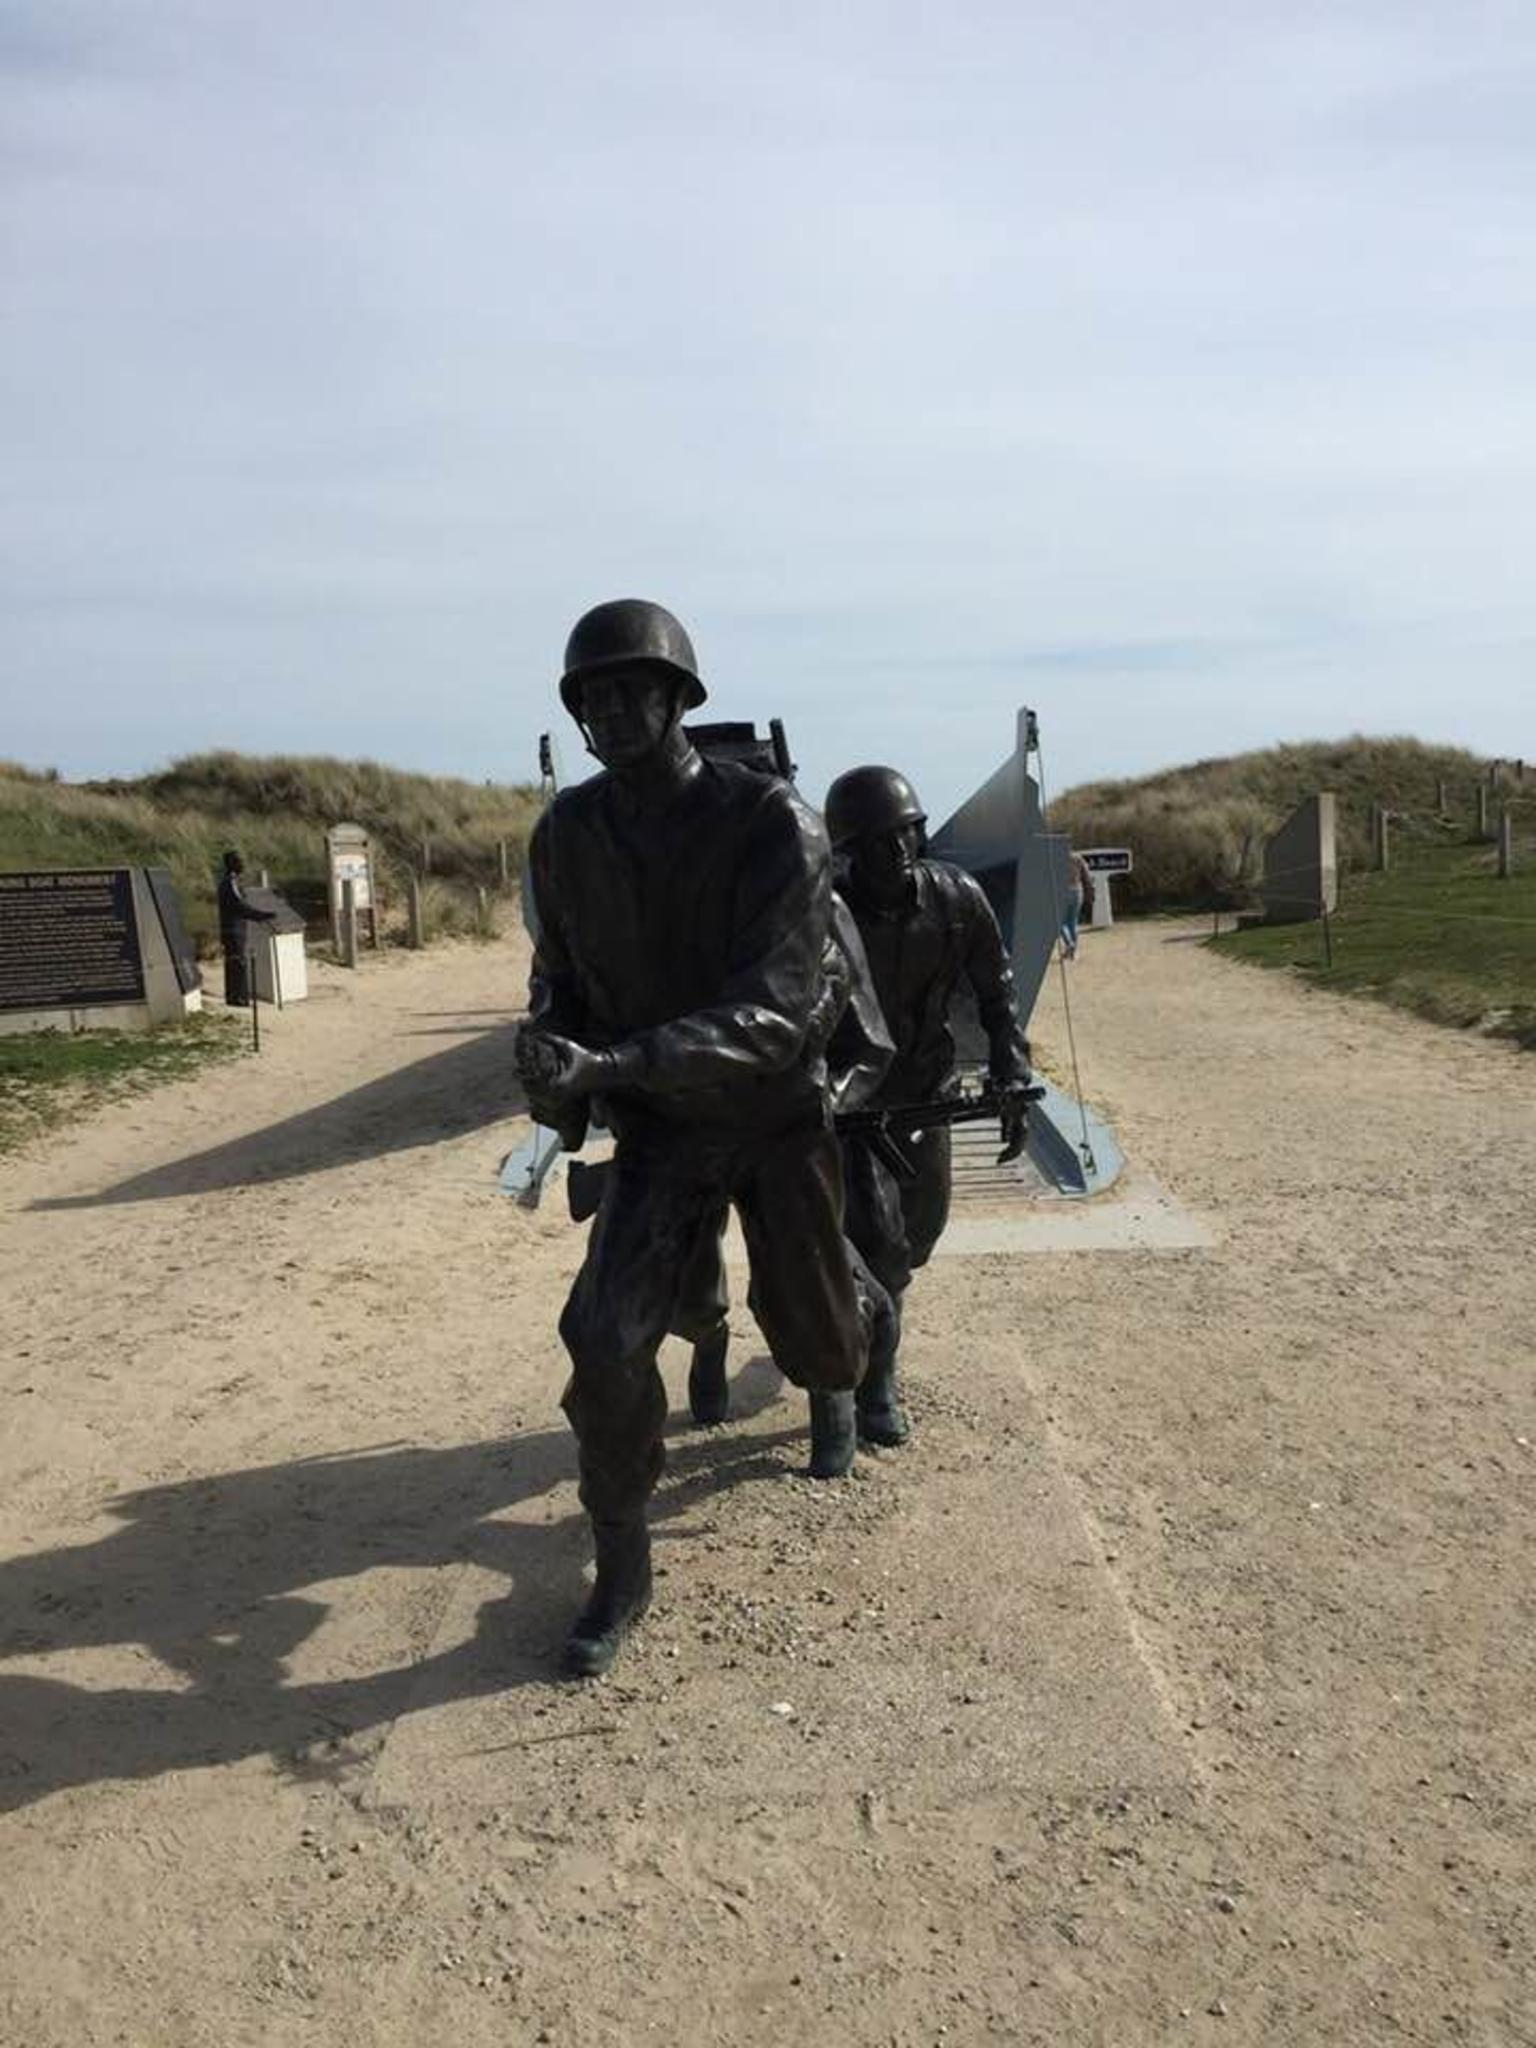 MORE PHOTOS, Normandy D-Day Landing Beaches Day Trip with Cider Tasting & Lunch from Paris